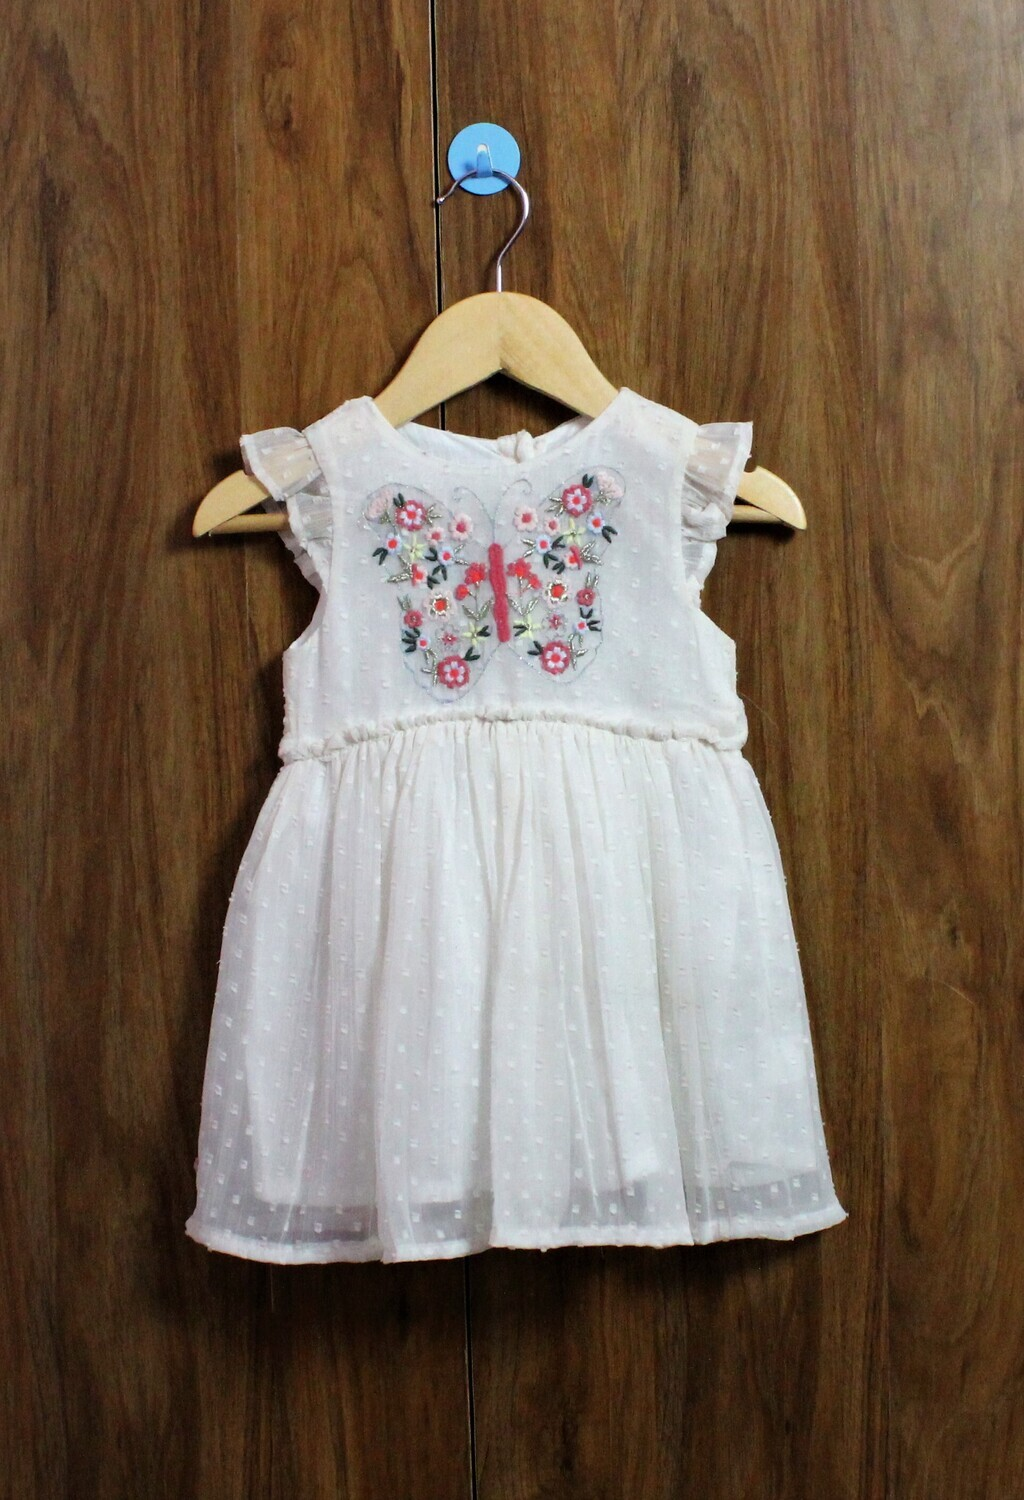 Butter fly emb dress(1 to 7-8 Yrs.)